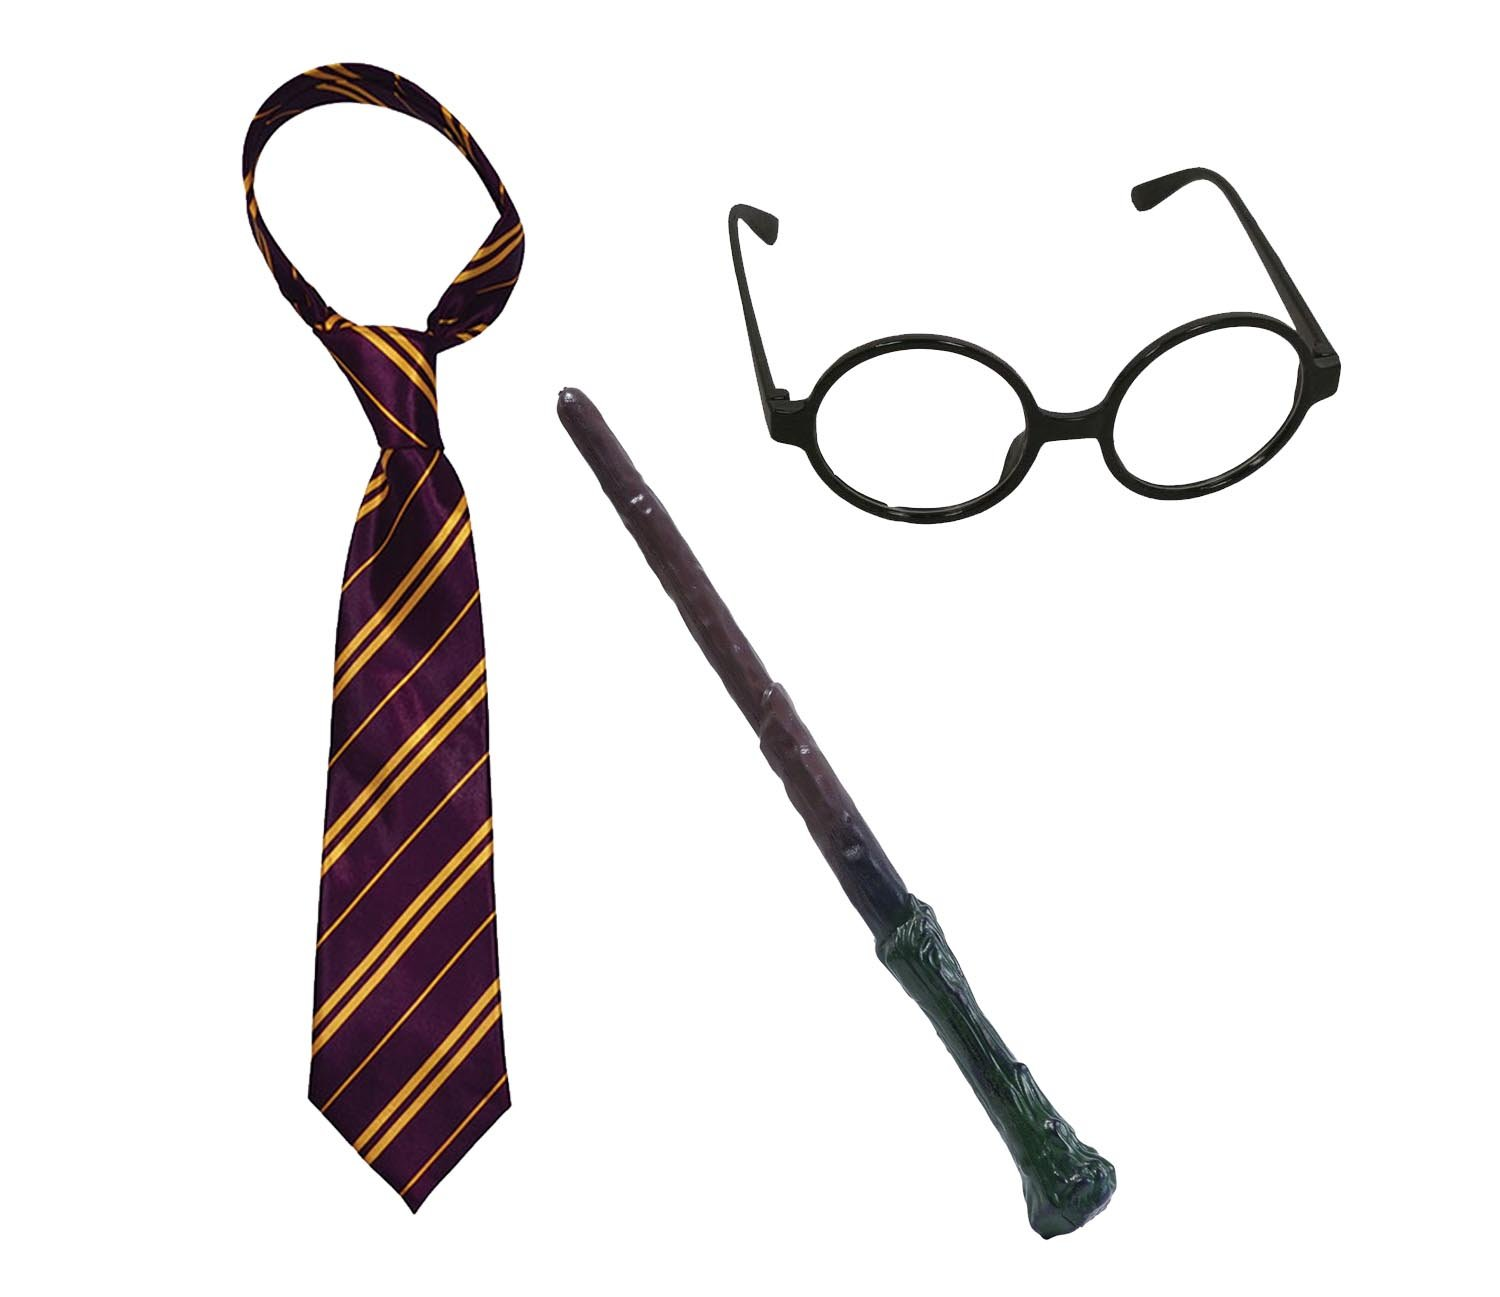 WIZARD ROUND GLASSES PLASTIC BRANCH WAND BOOK DAY FANCY DRESS ACCESSORIES